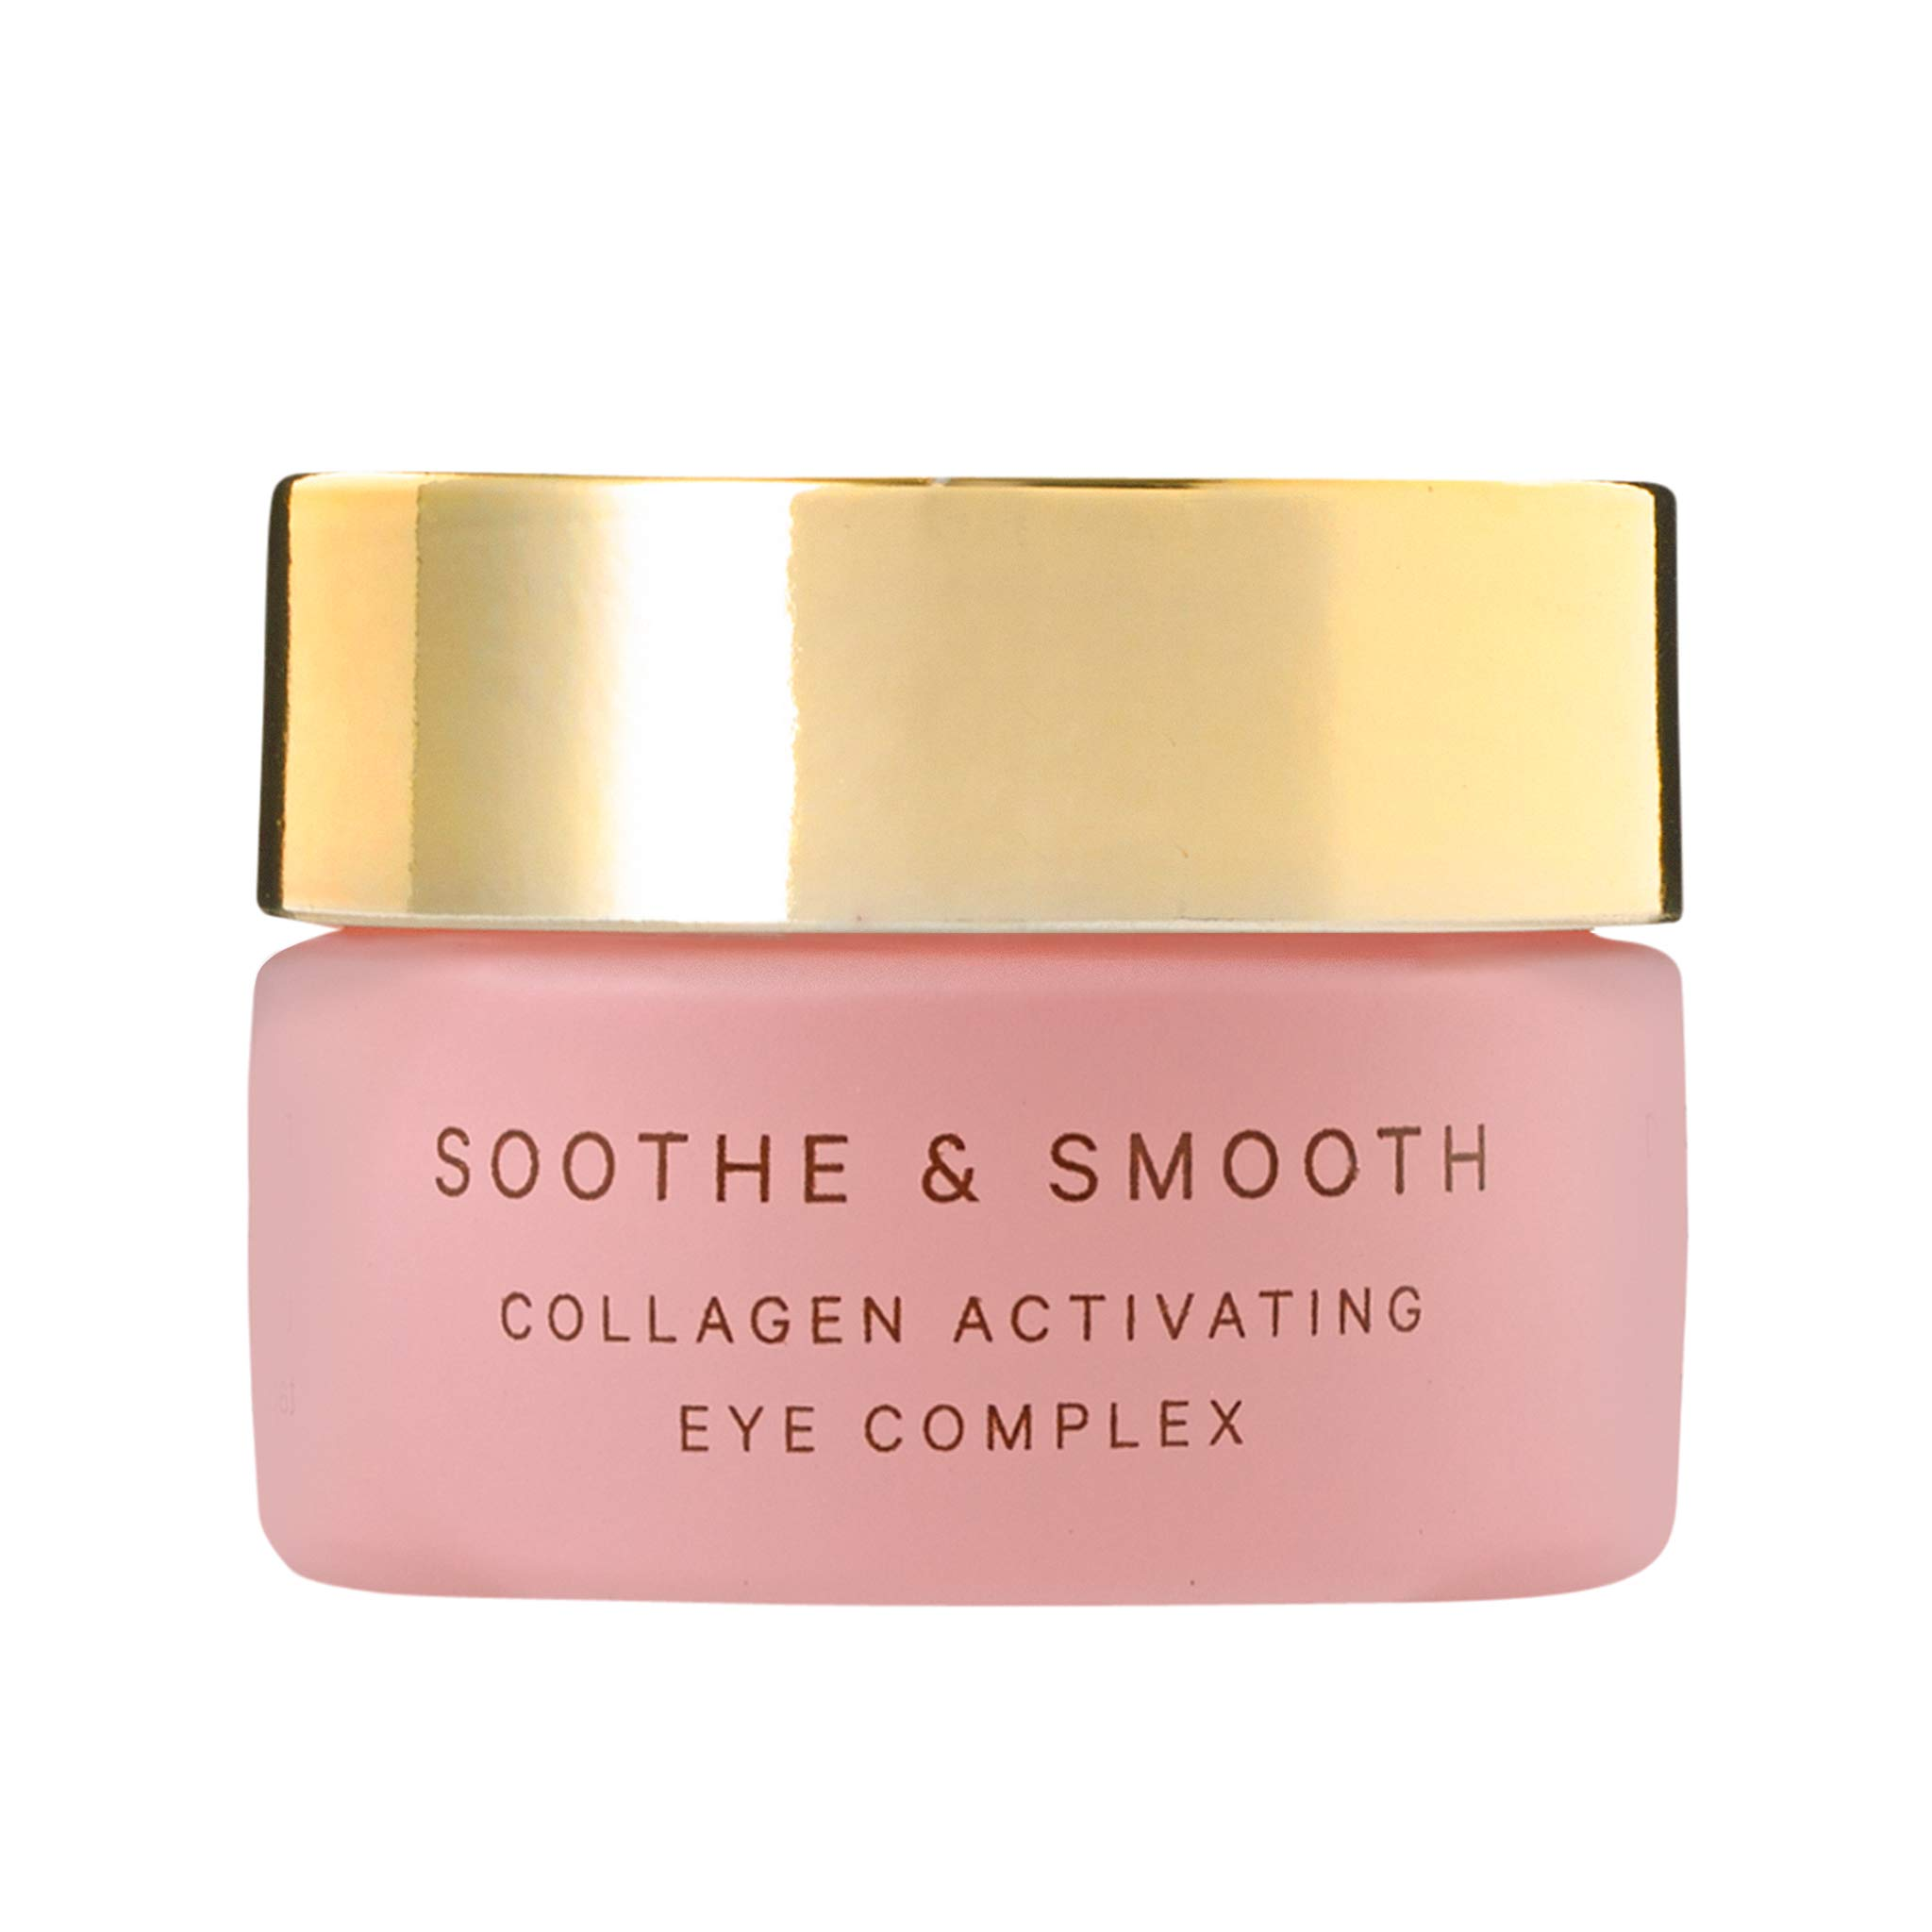 SOOTHE & SMOOTH Collagen Activating Eye Complex